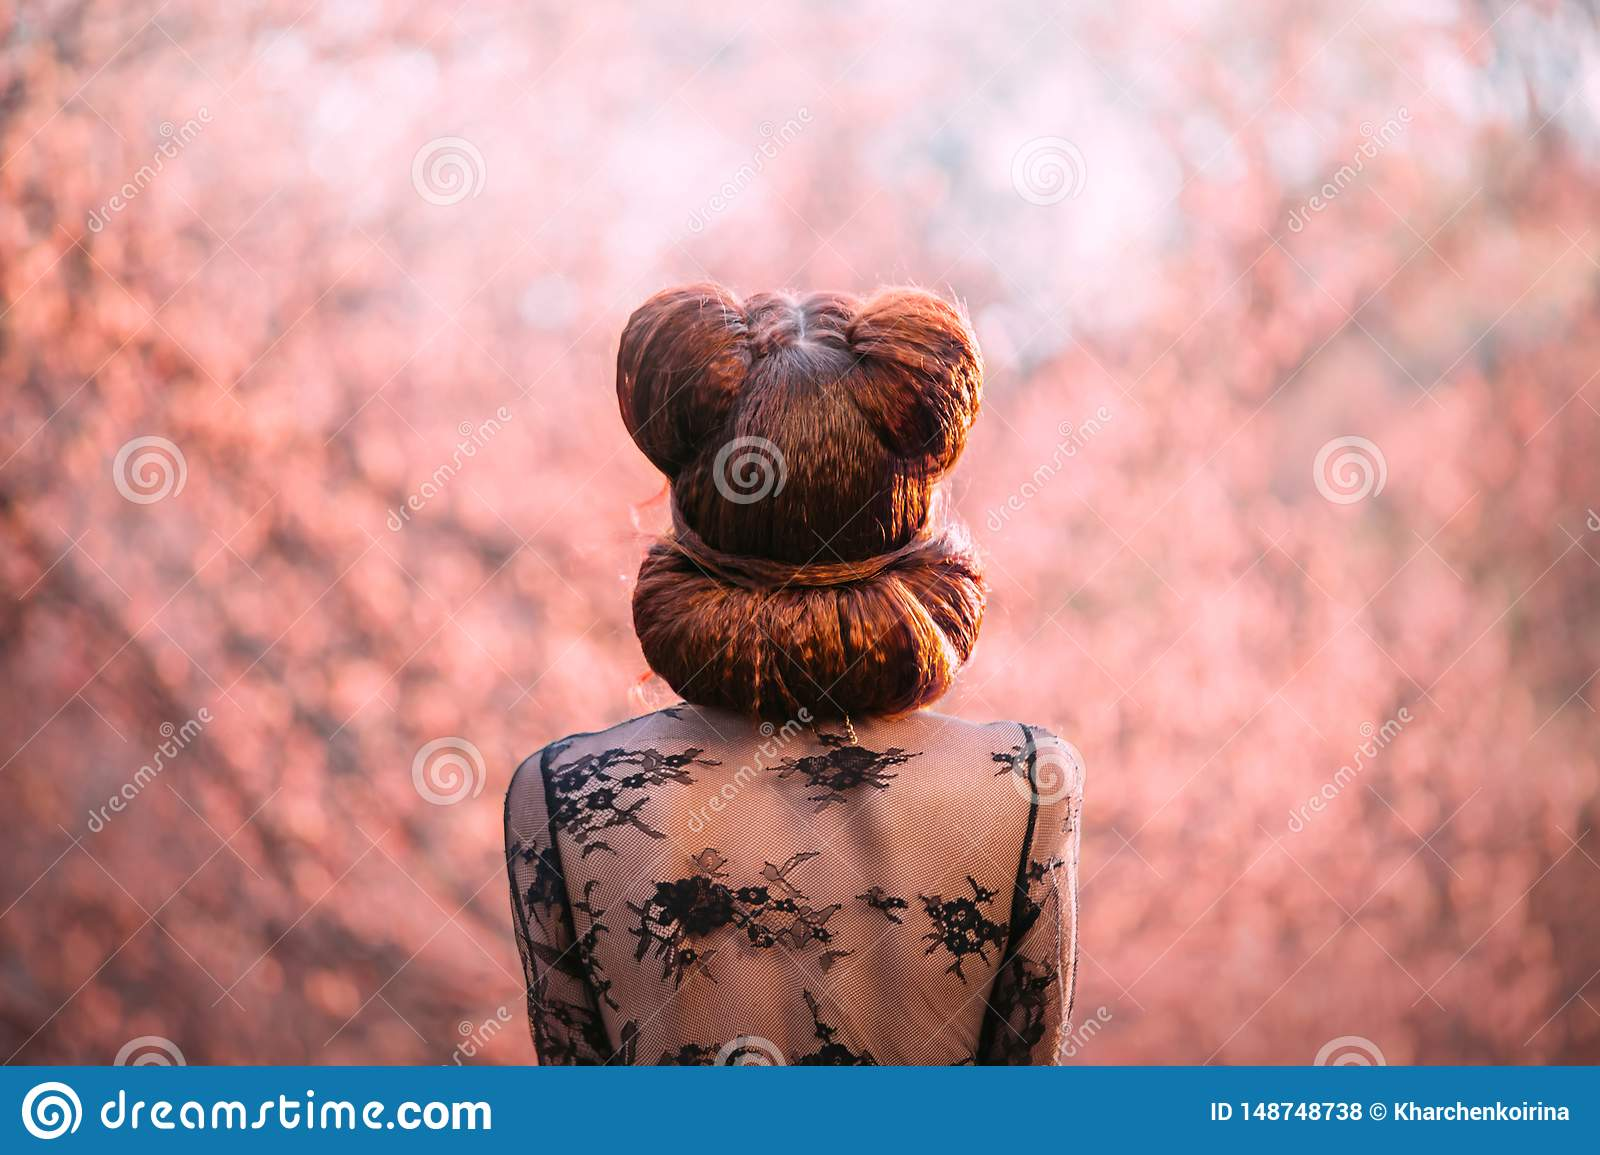 Mysterious lady, with a creative hairstyle pin-up, shooting from the back without a face. Red hair creatively twisted in